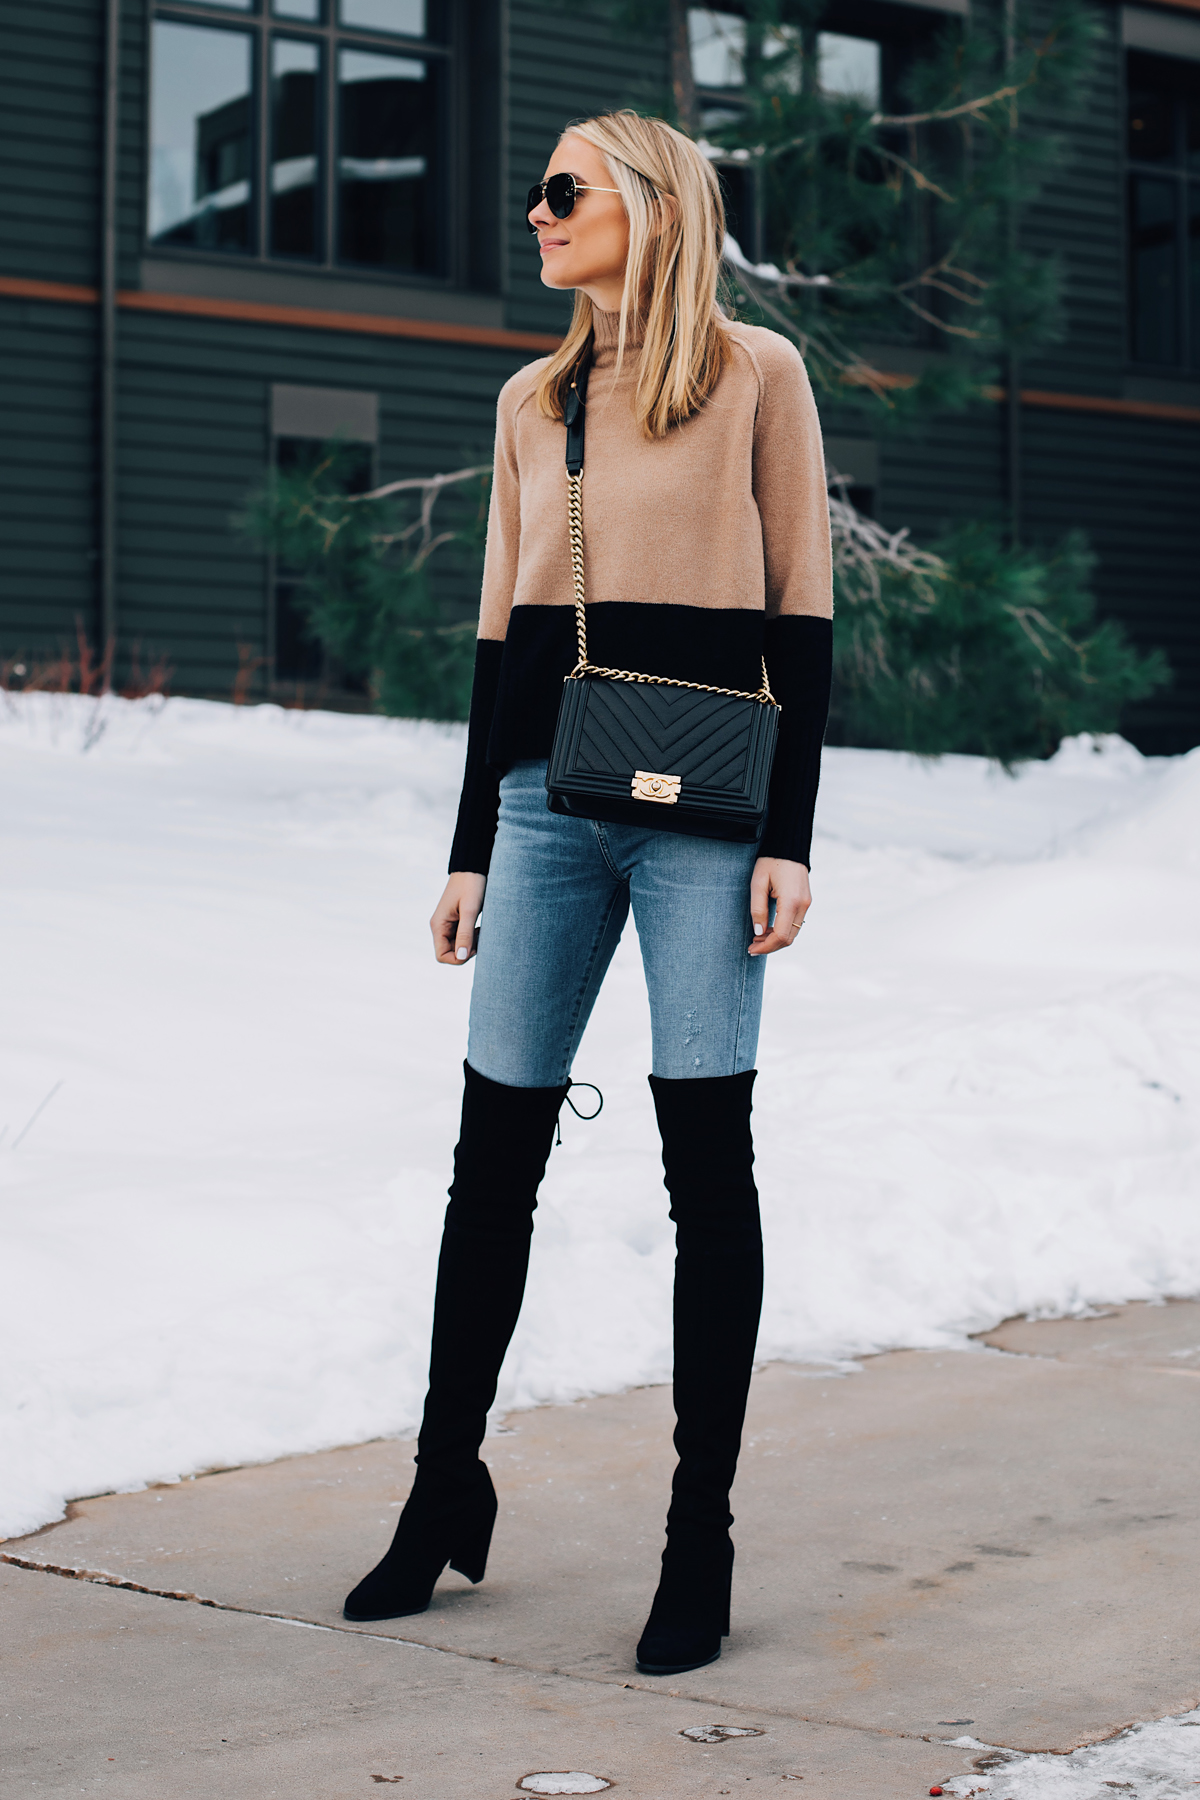 Blonde Woman Wearing Tan Black Color Block Sweater Denim Skinny Jeans Stuart Weitzman Black Over the Knee Boots Chanel Black Boy Handbag Fashion Jackson San Diego Fashion Blogger Winter Style